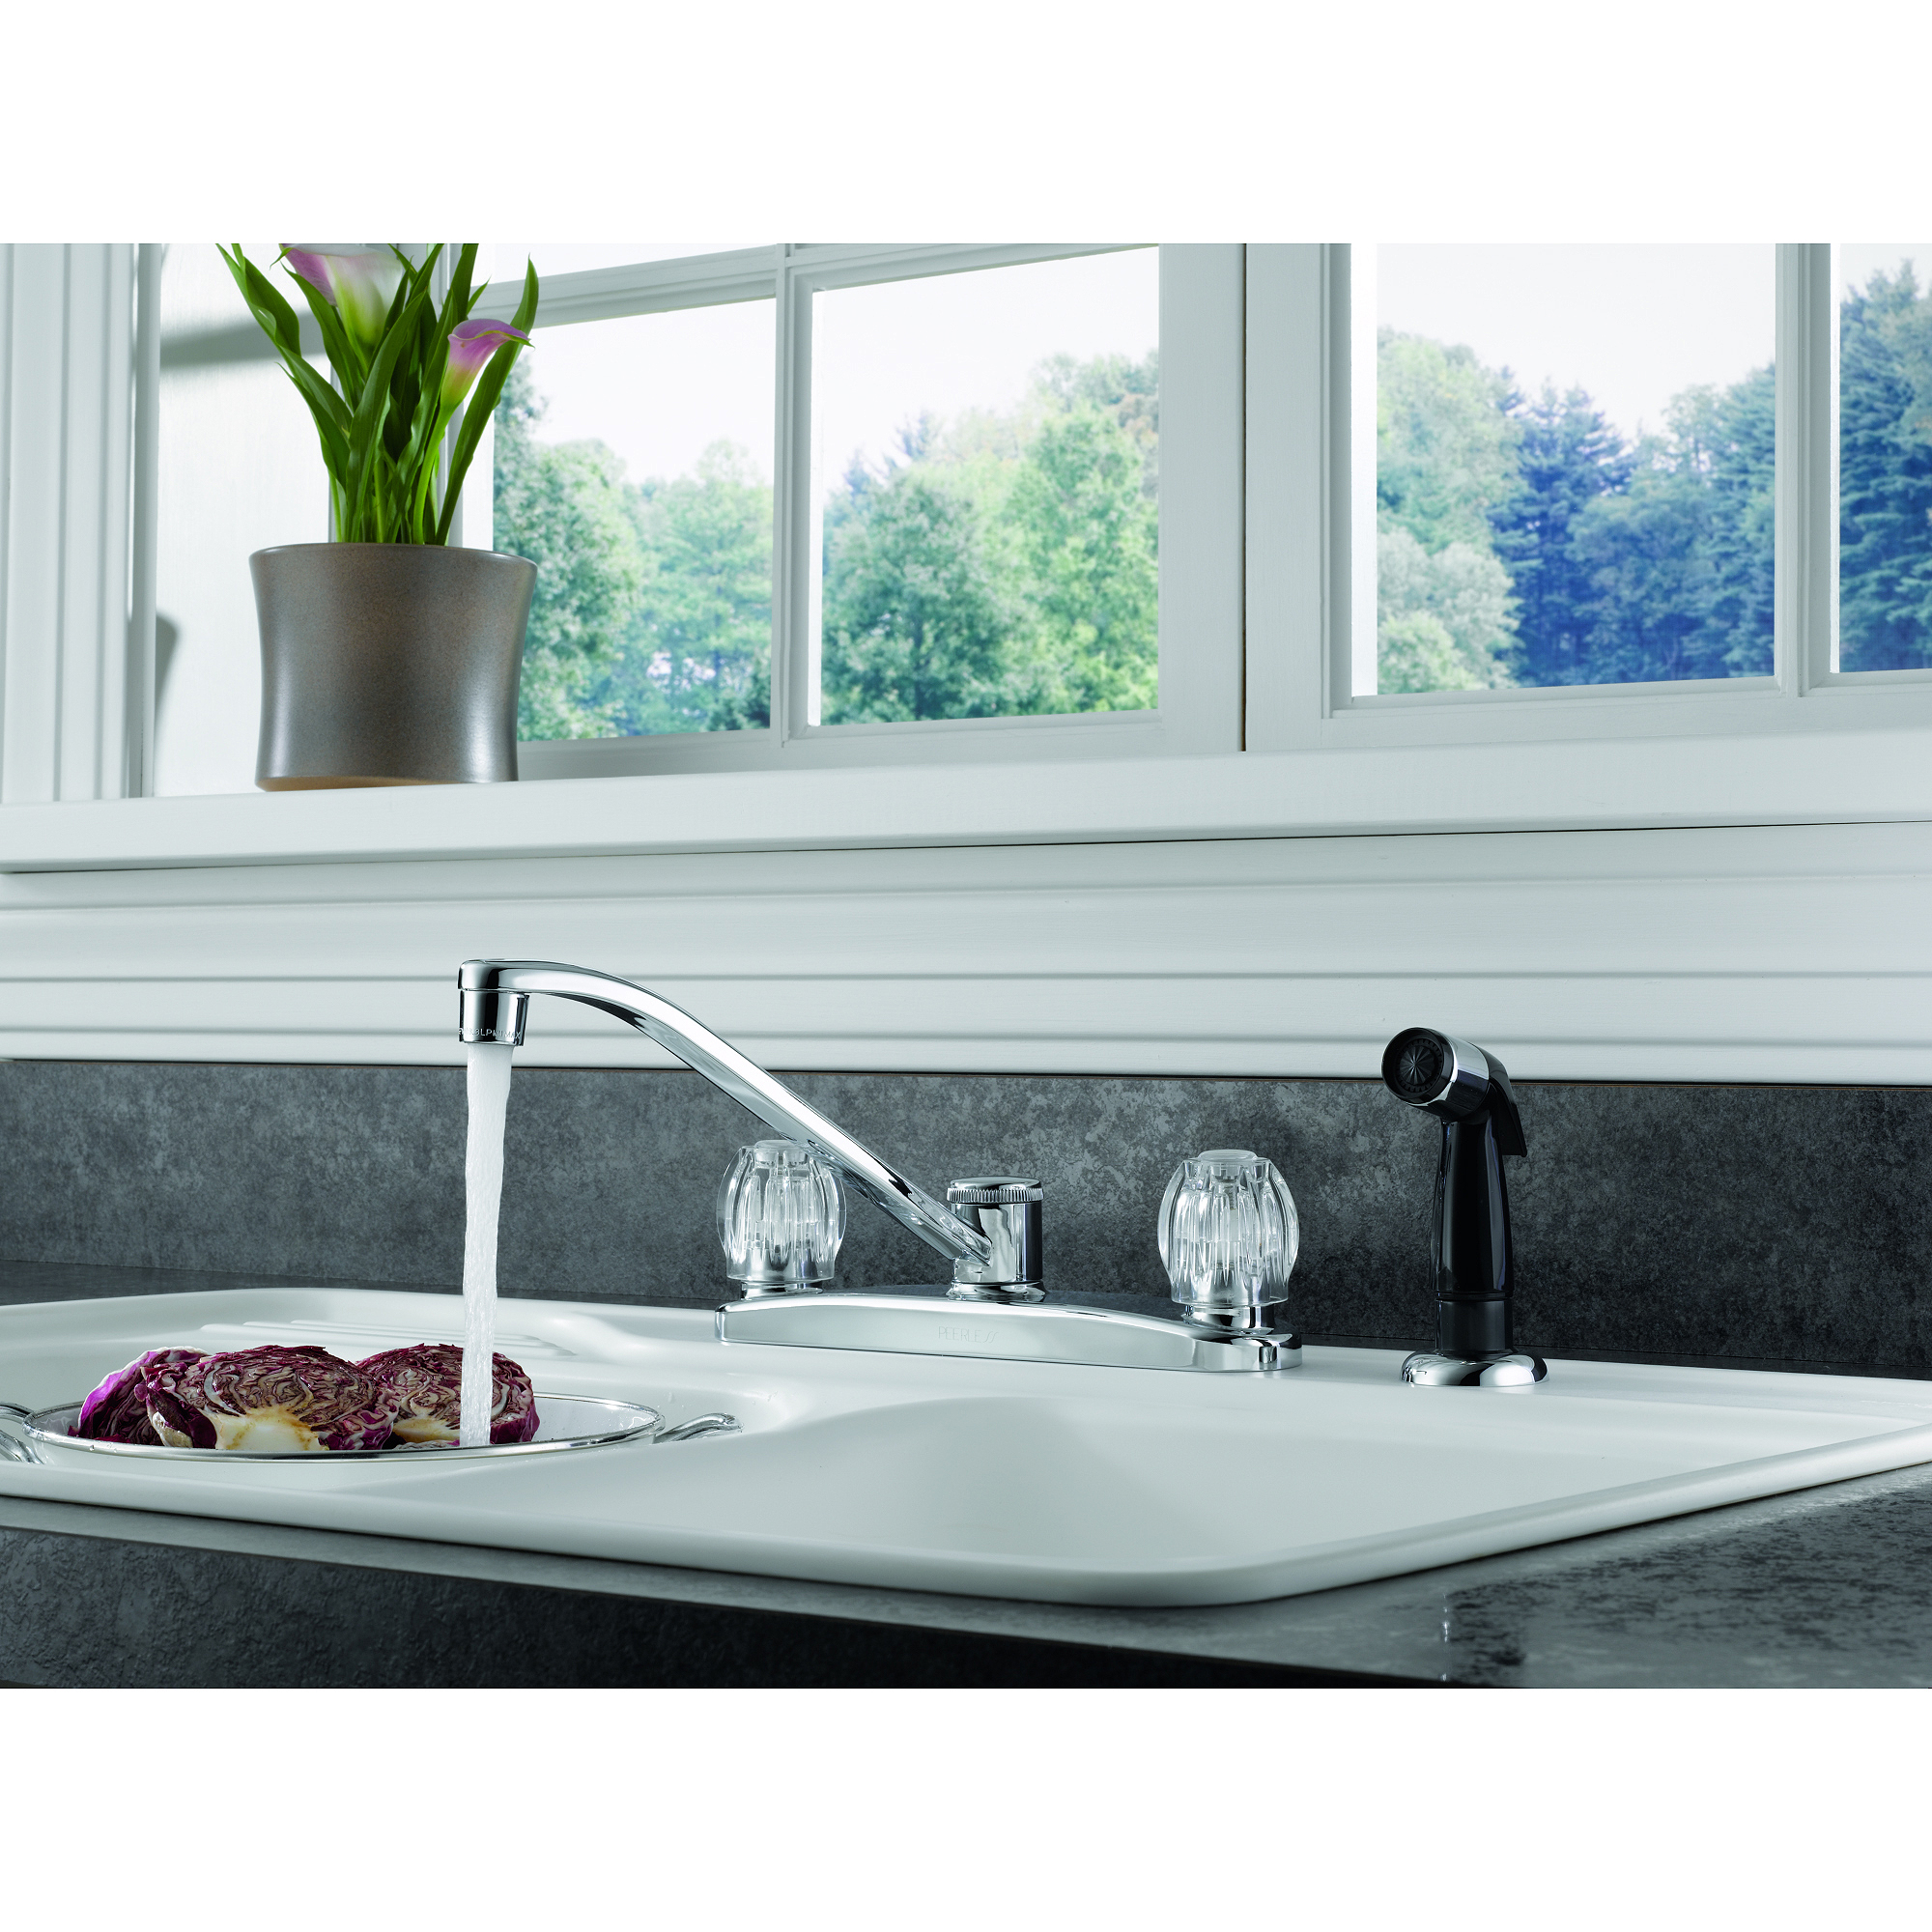 kitchen faucets walmart com walmart com peerless two handle kitchen faucet with side sprayer chrome p225lf w